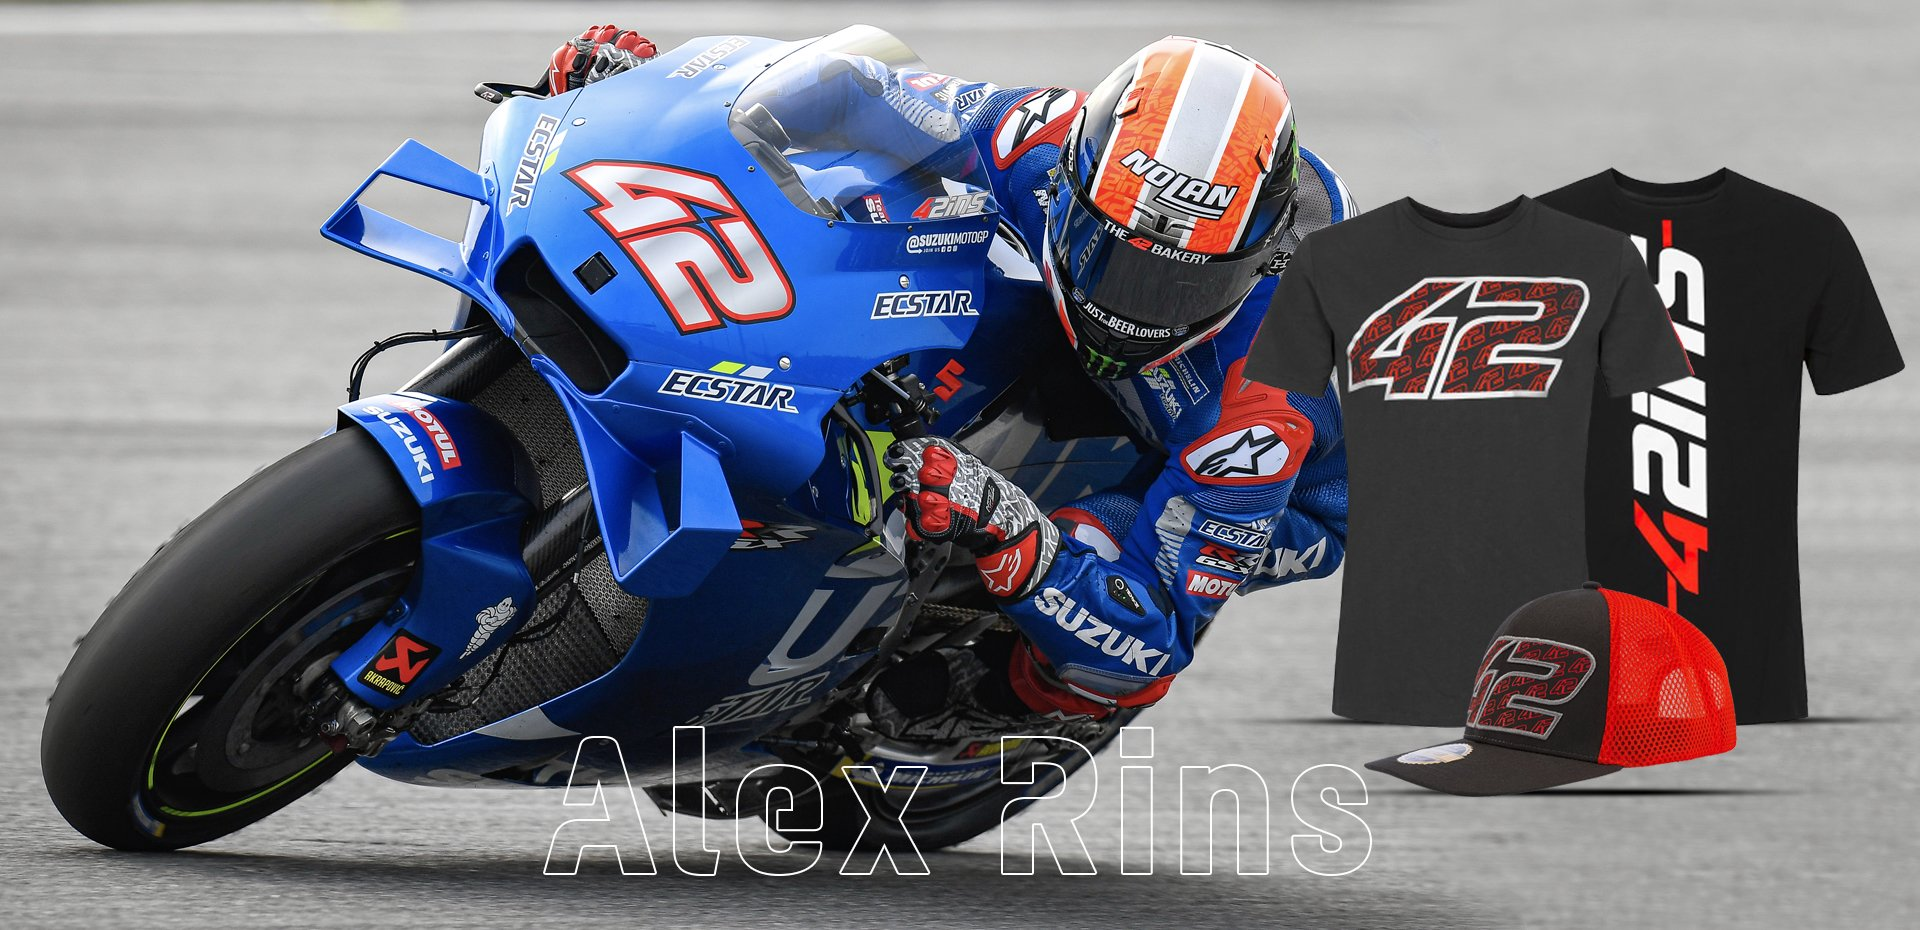 Alex Rins' first victory in 2020